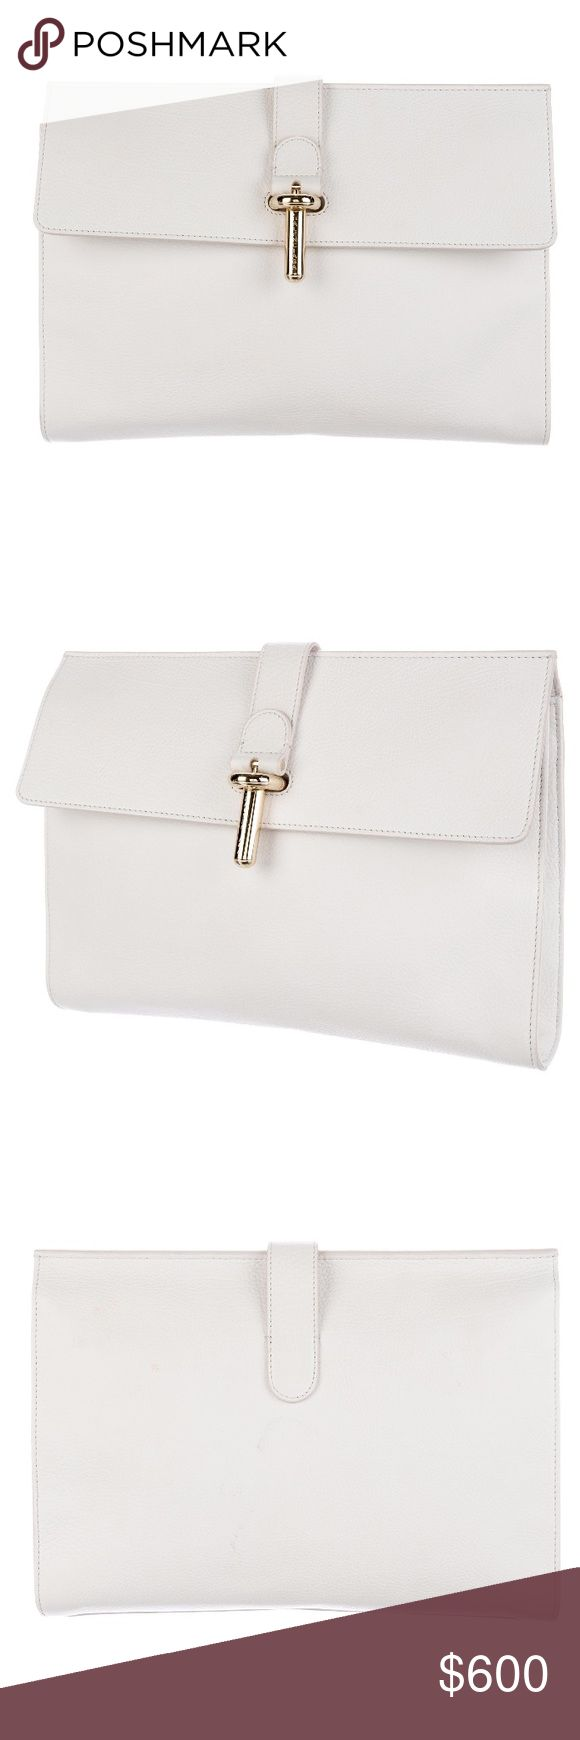 """💕BALENCIAGA CLUTCH AMAZING BALENCIAGA WHITE CLUTCH!!!  Used but in very good condition (3rd photo shows some discoloration on the back which is hardly noticeable). This is from the Spring/Summer 2014 collection.  It is white grained calfskin leather with gold tone hardware.  Inside it has wall pockets as well as a zip pocket.  Height- 9"""", Width- 11.5""""  This is 100% Authentic which Poshmark will authenticate when this is purchased. Thanks for checking this beautiful clutch out! :) Balenciaga…"""